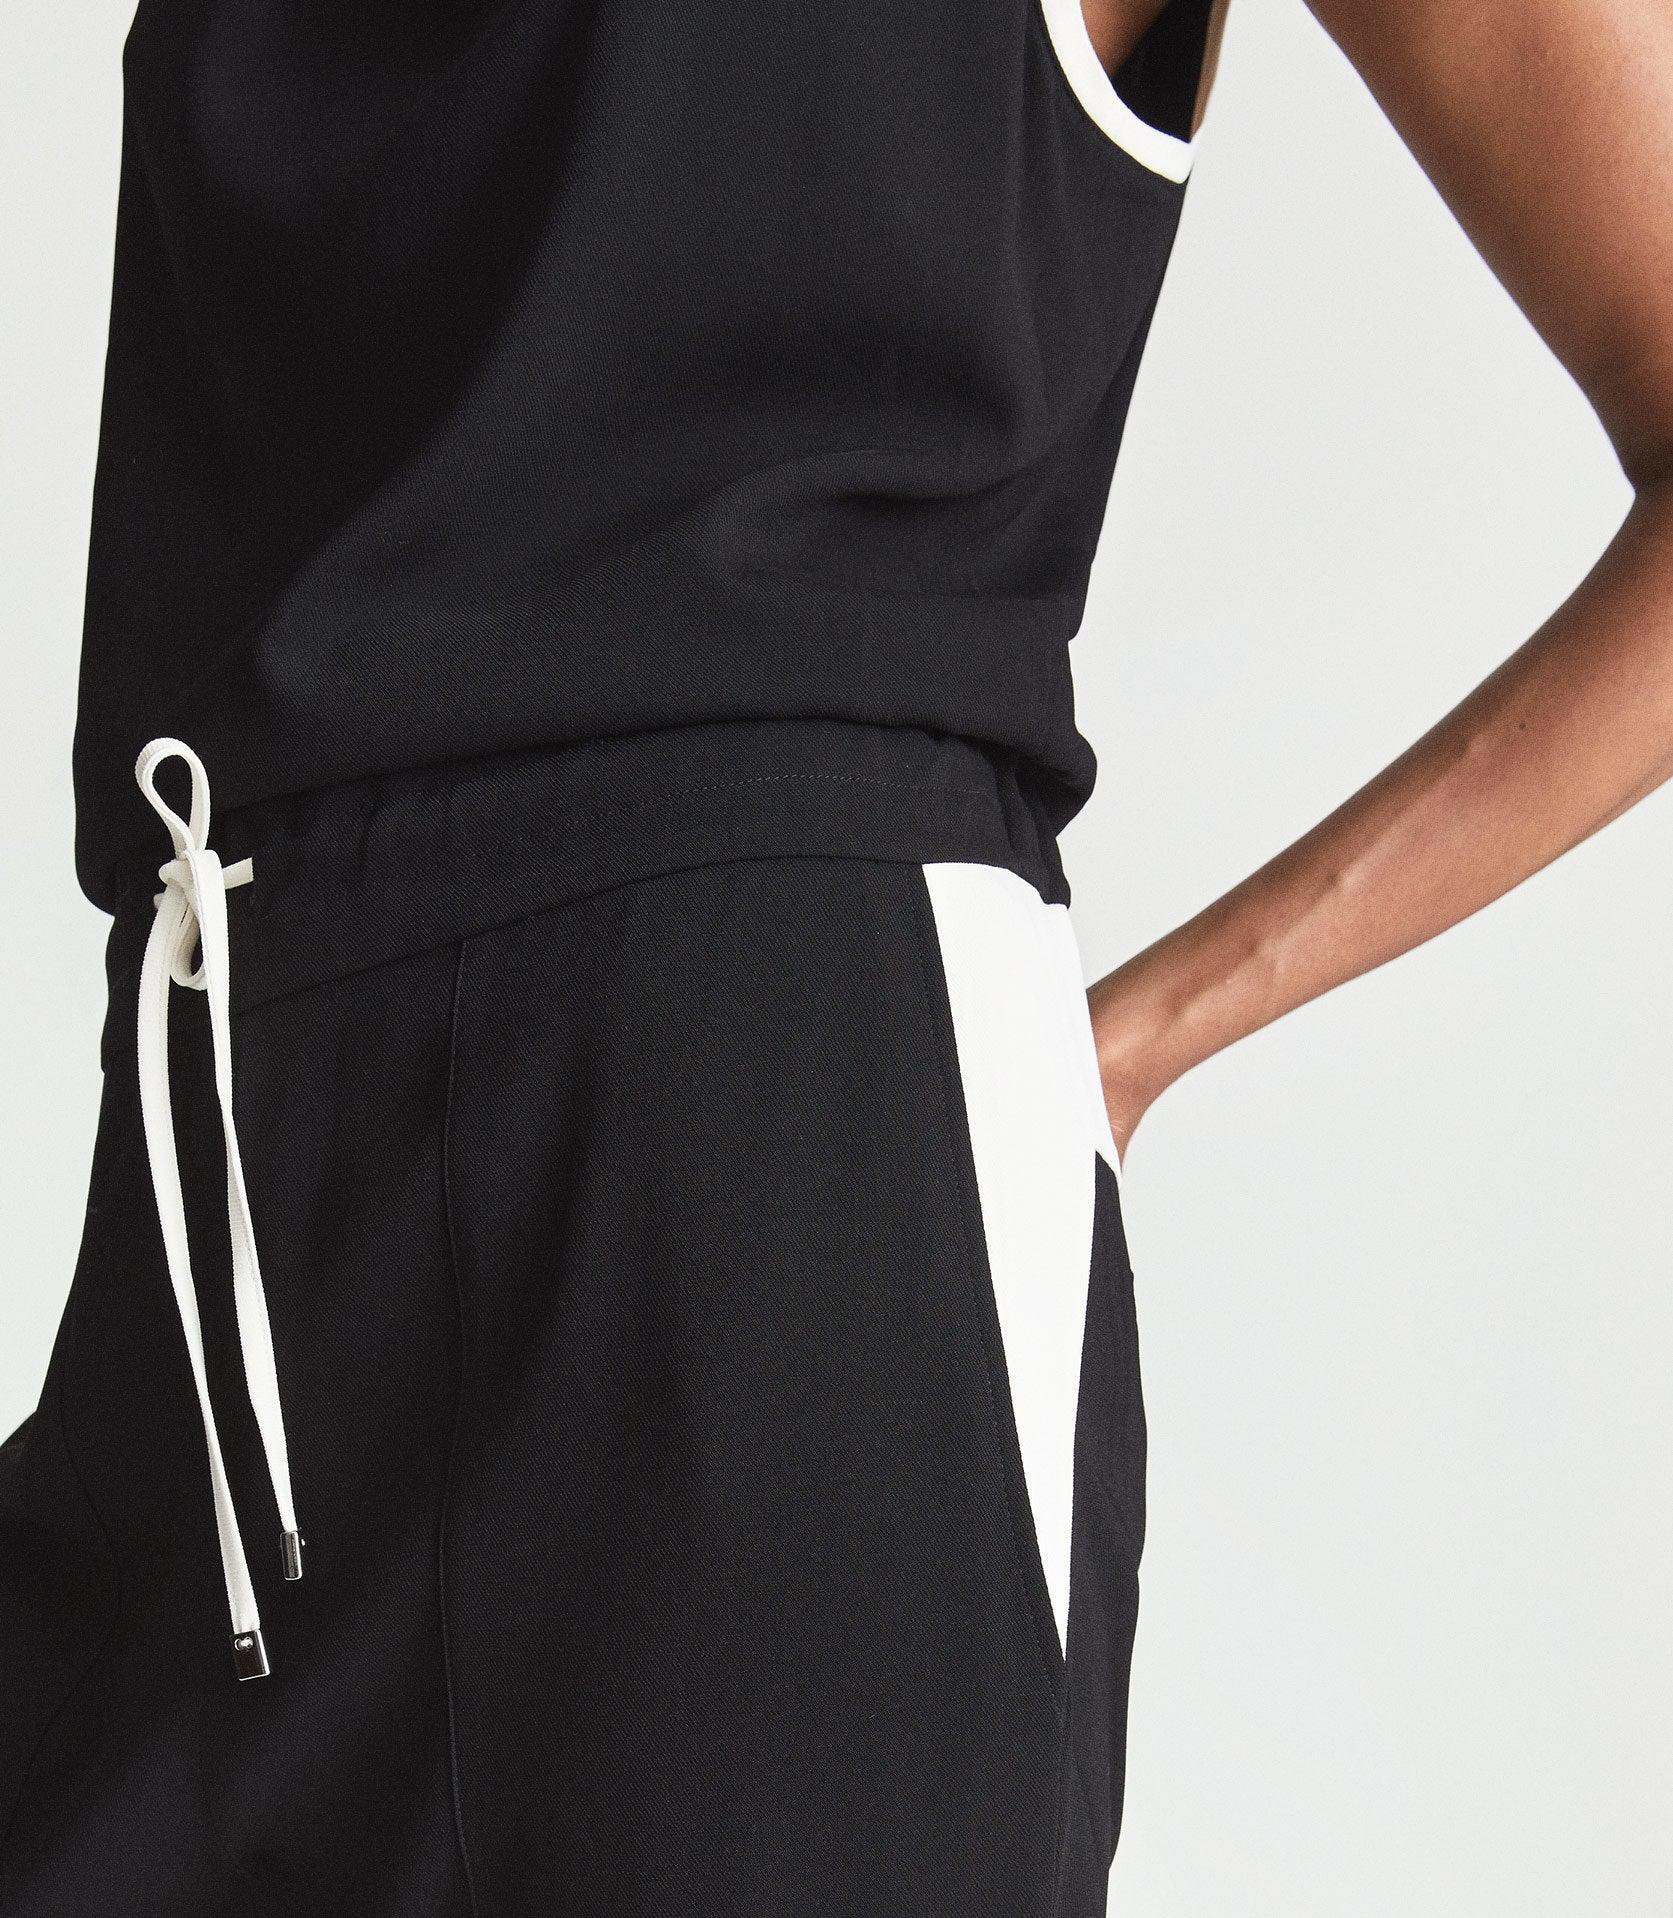 CLAUDIA - SLEEVELESS JUMPSUIT WITH CONTRAST TIPPING 5